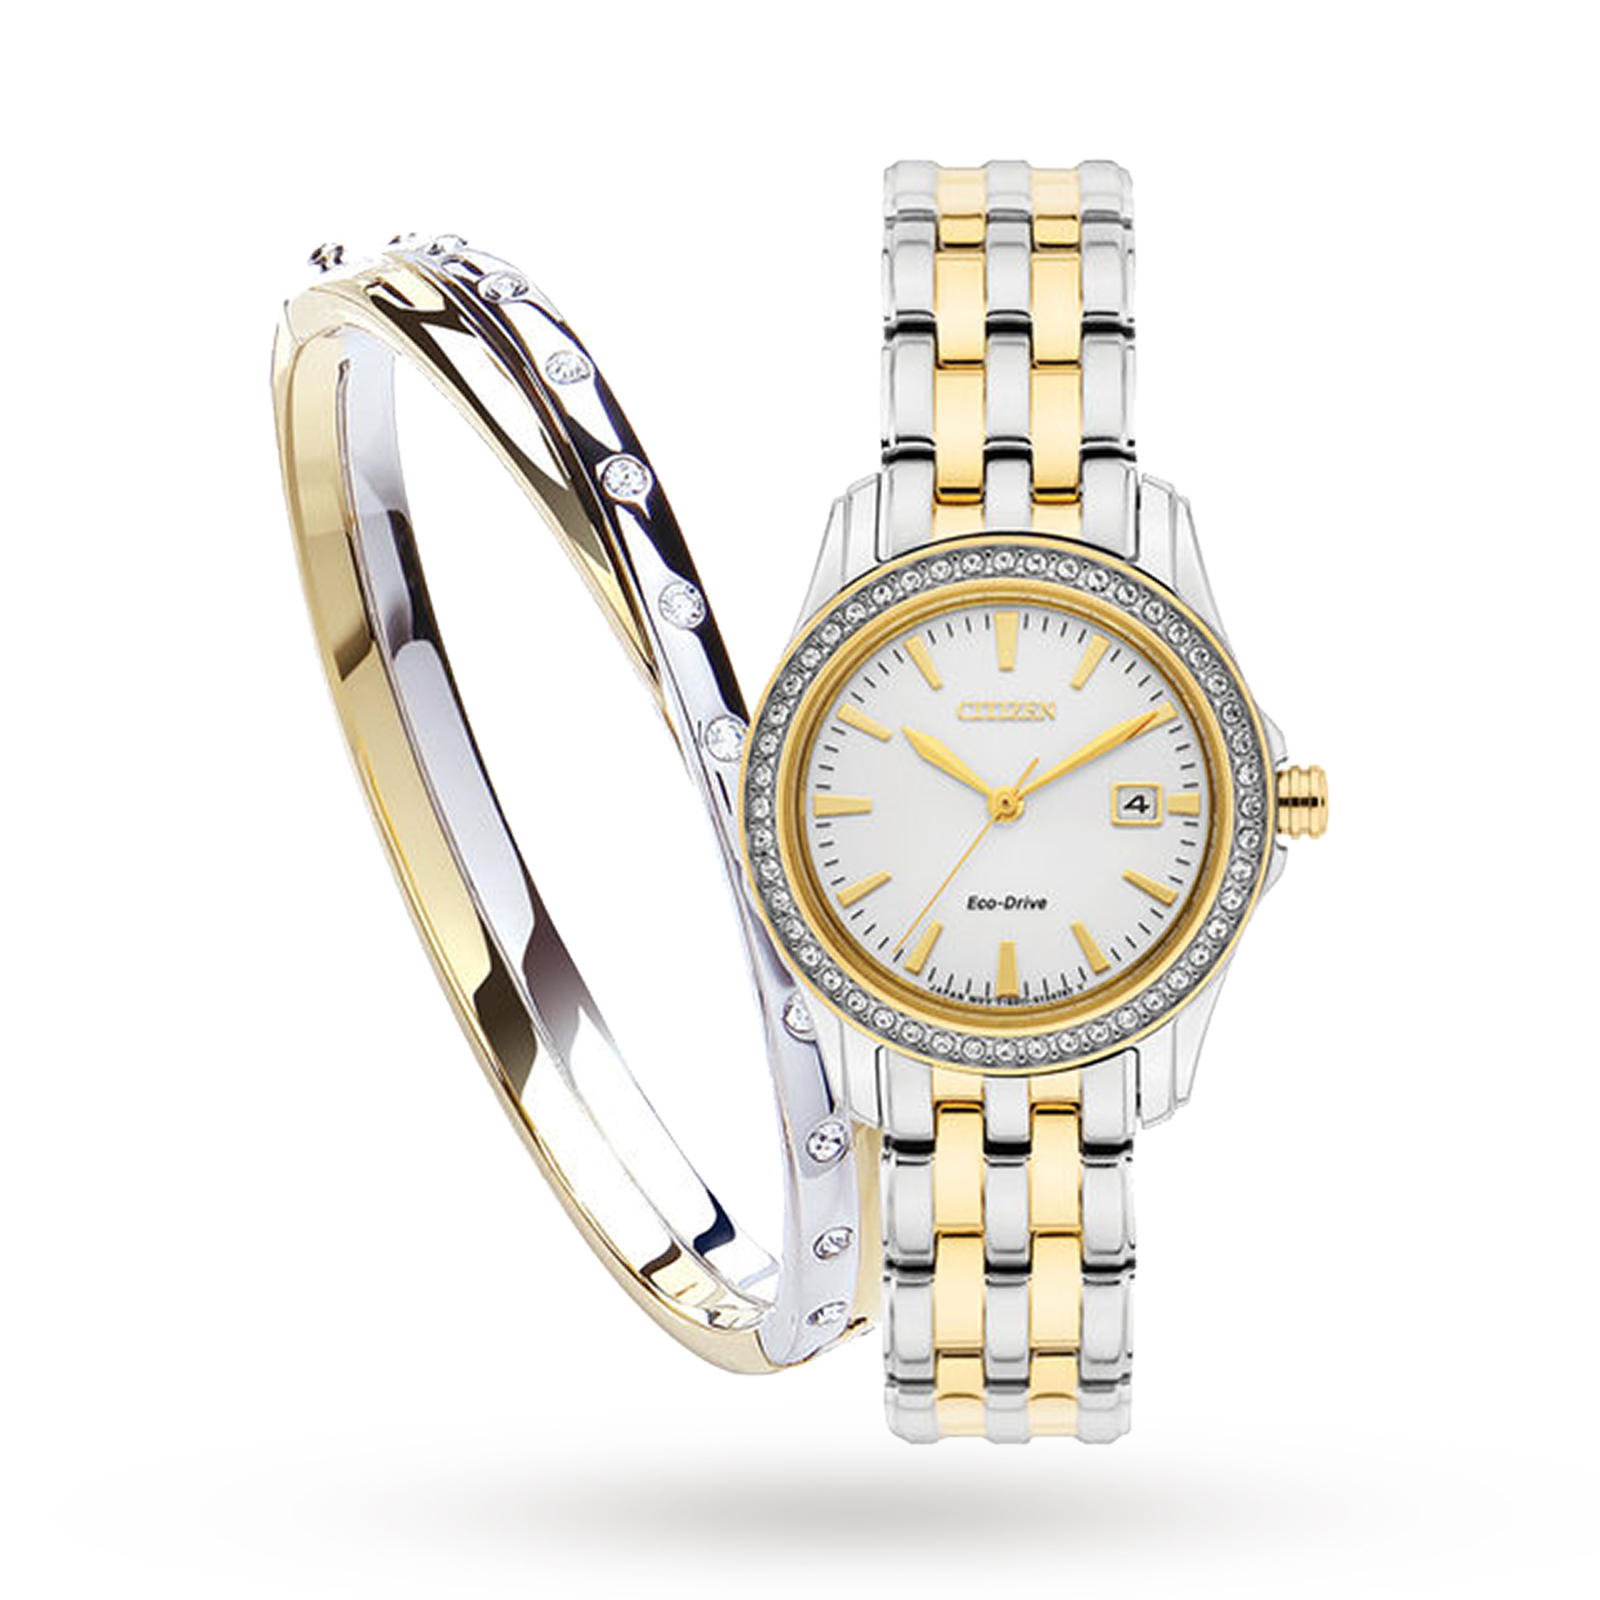 Exclusive Citizen Ladies' Gift Set - Exclusive